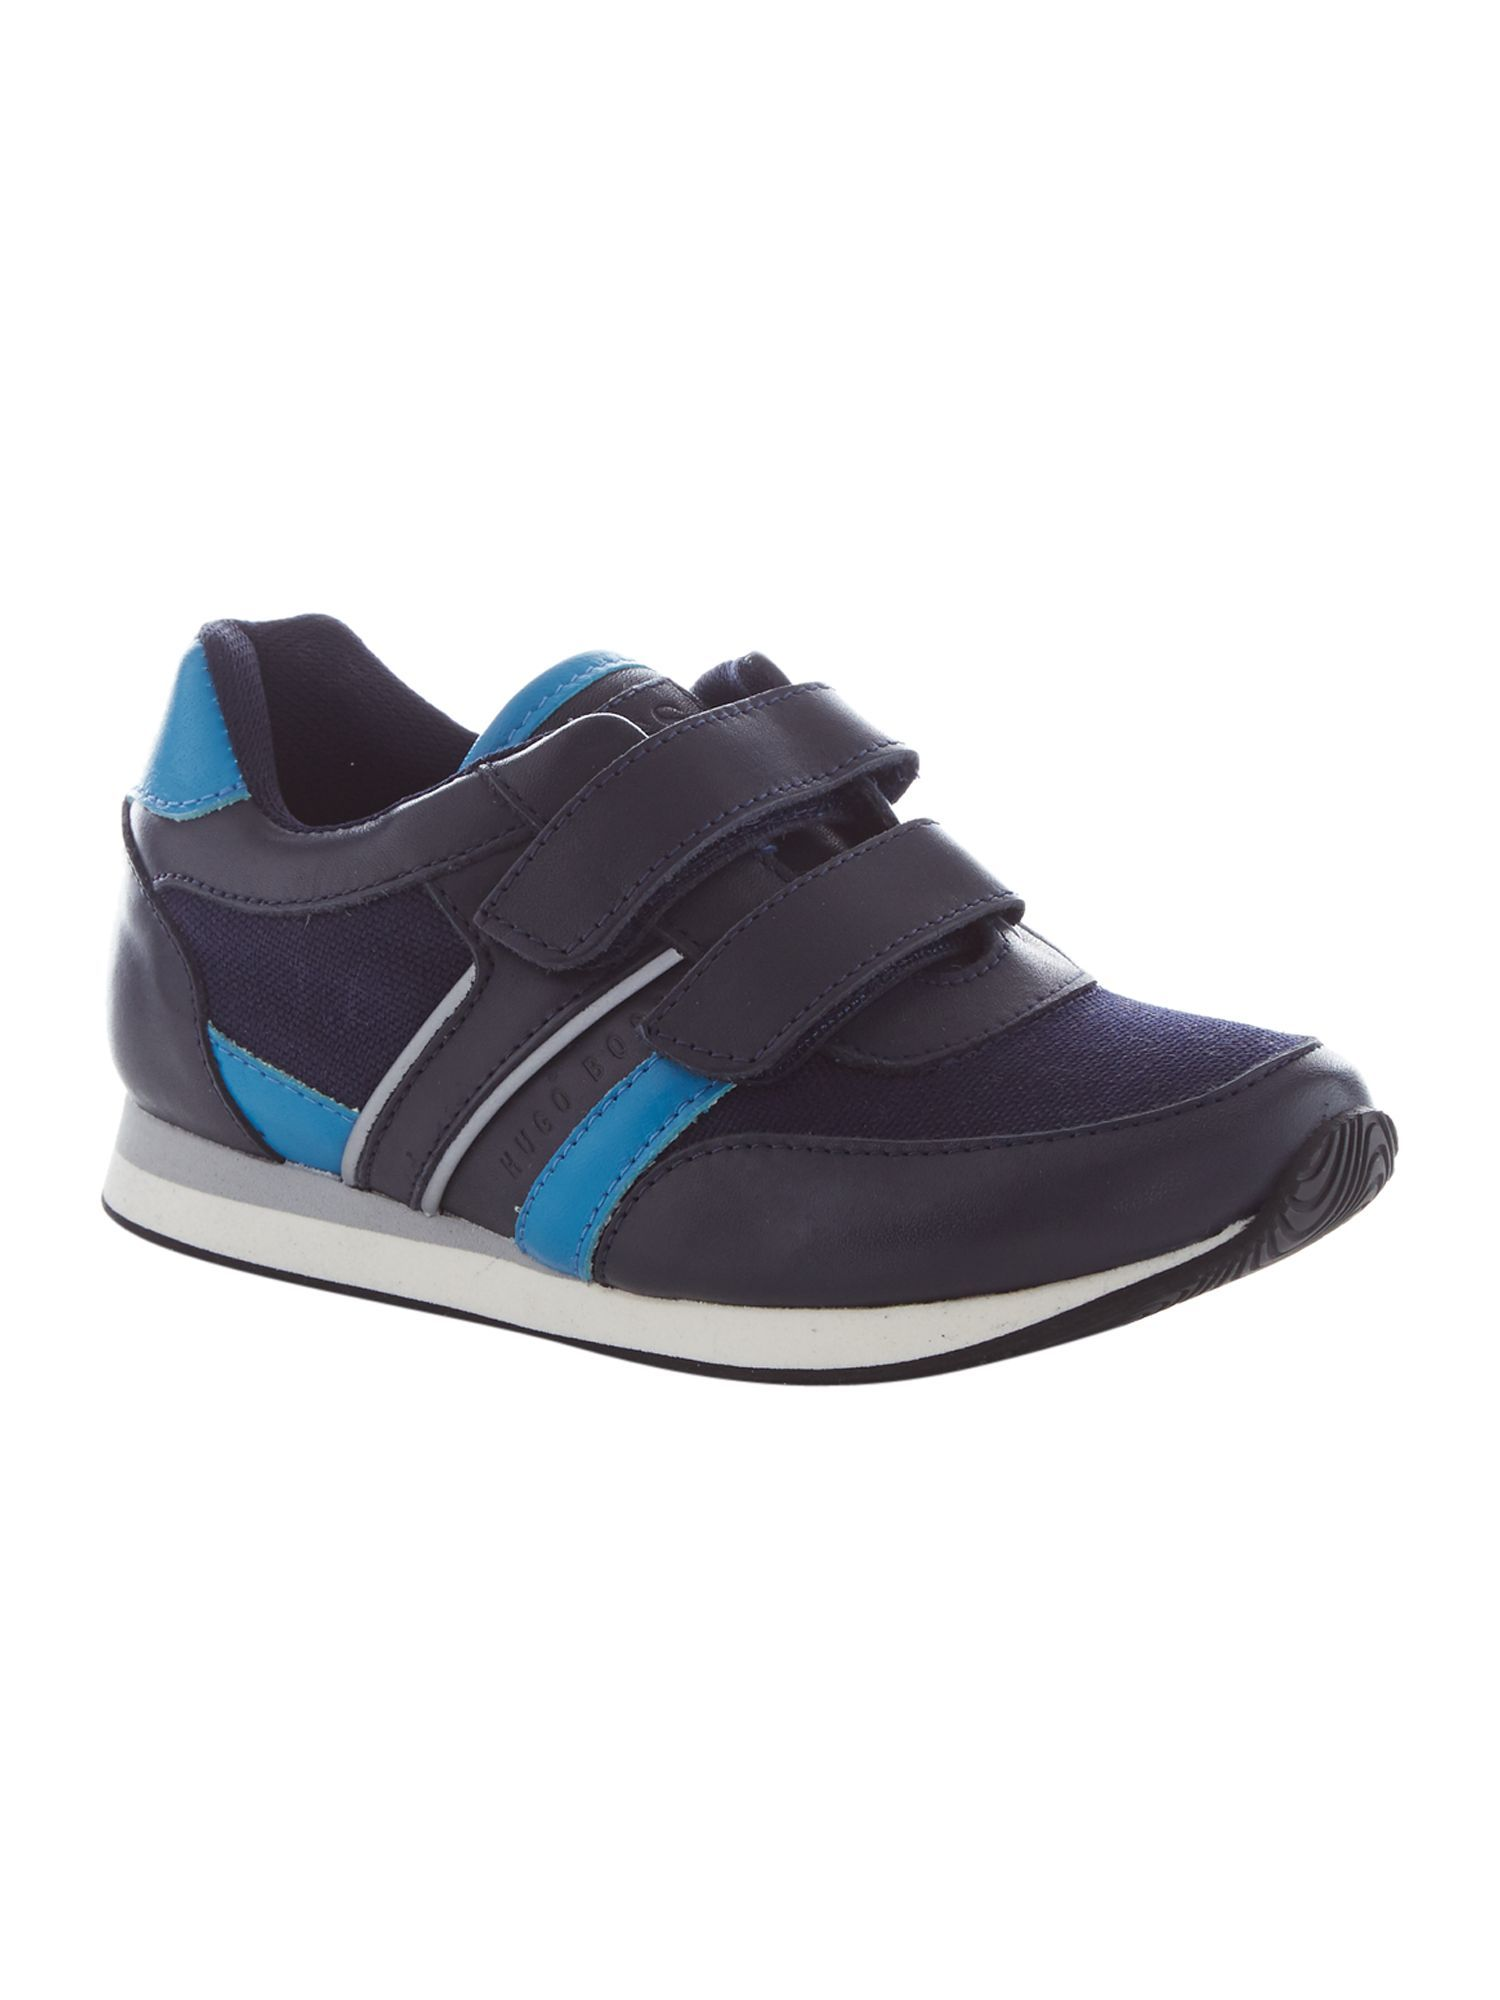 Hugo Boss Boys Velcro Trainers ef13a594adad